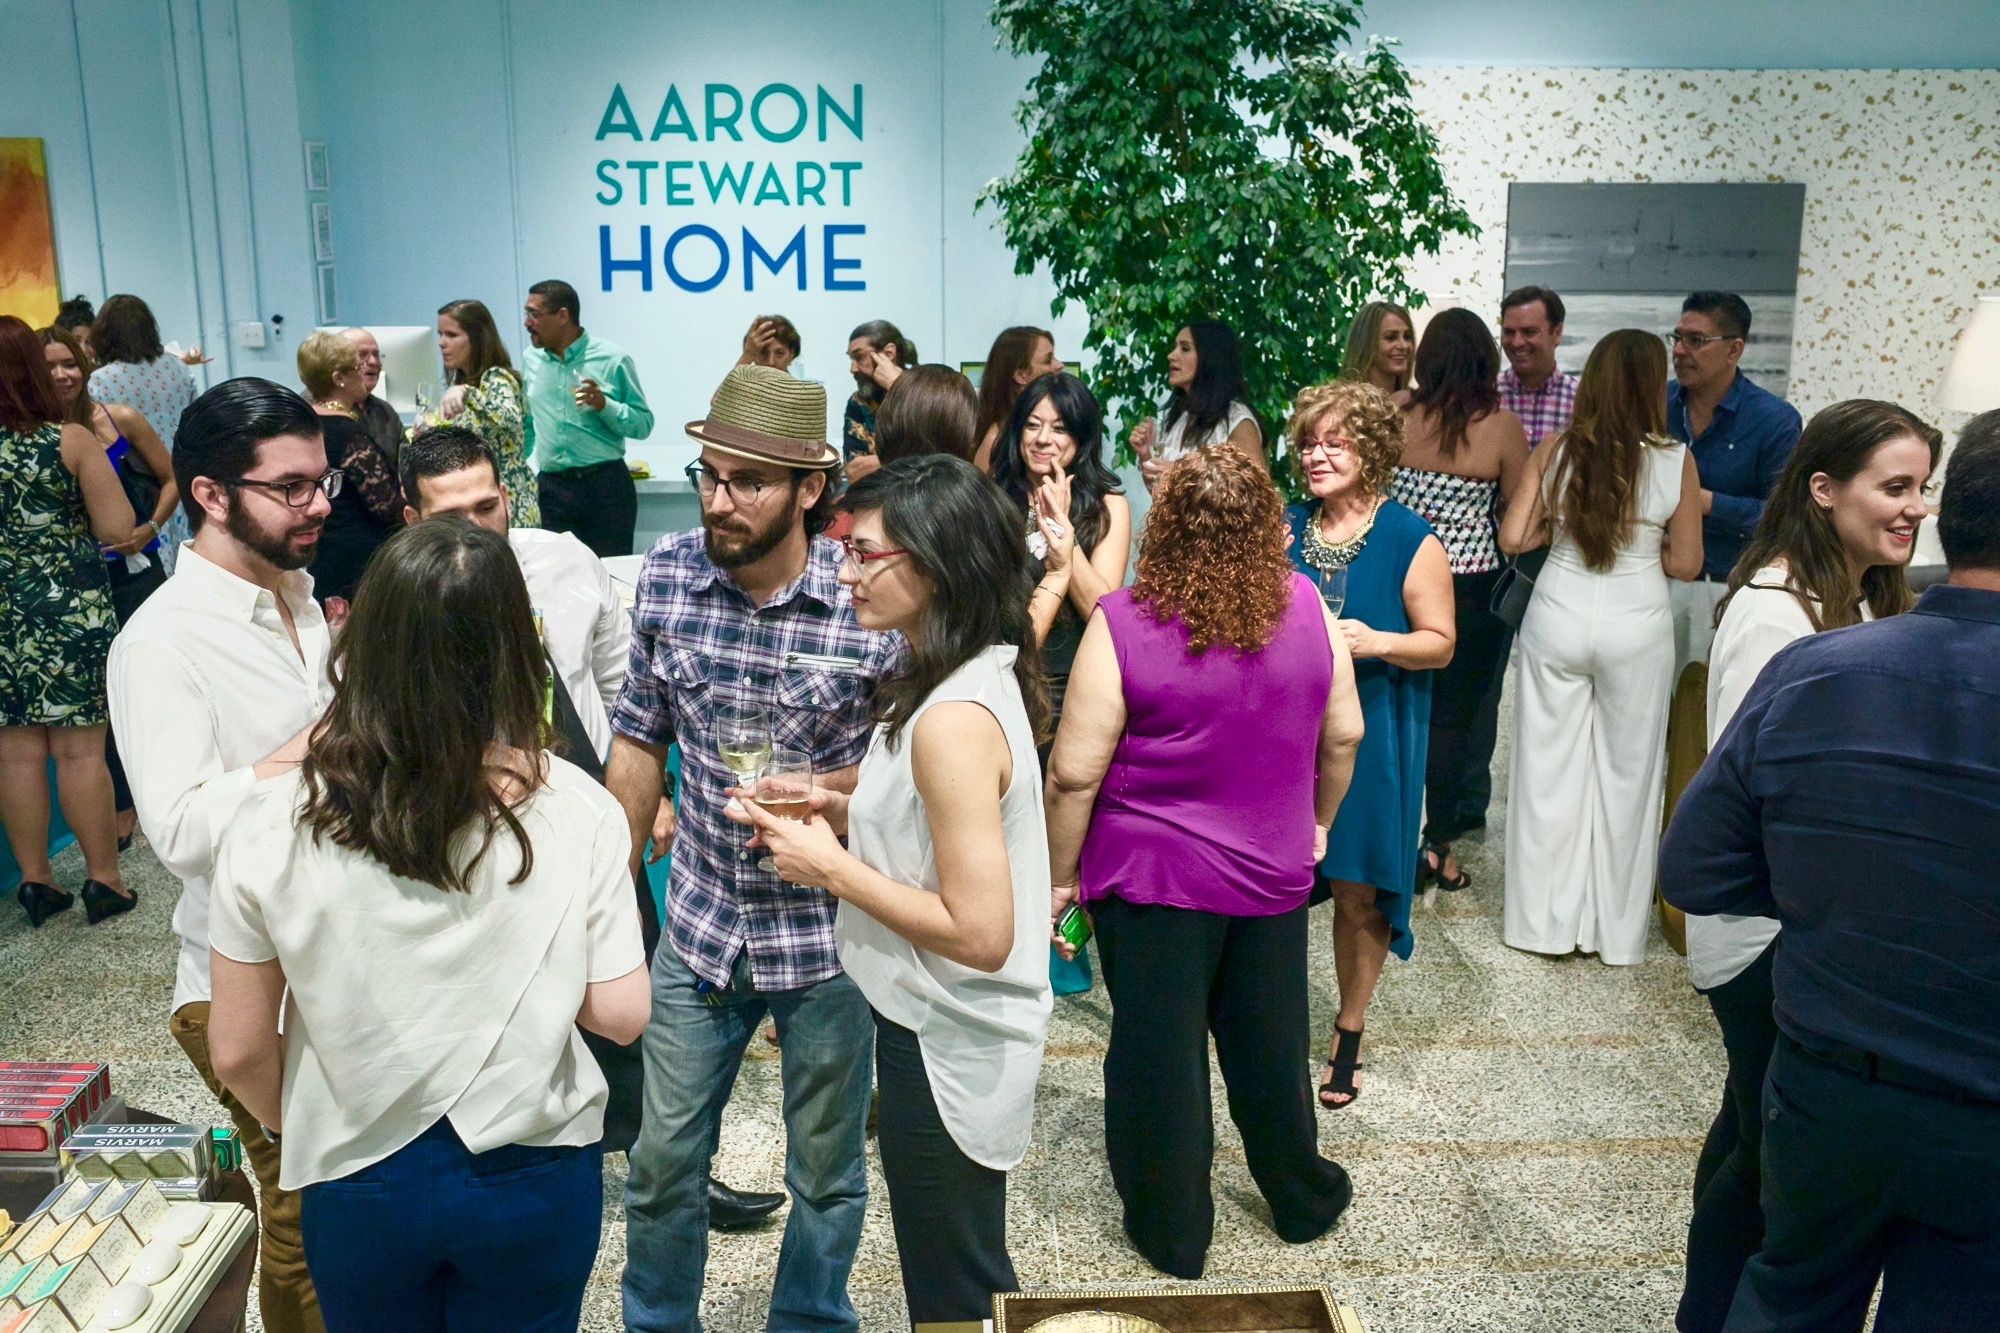 CODDI Event and Aaron Stewart Home